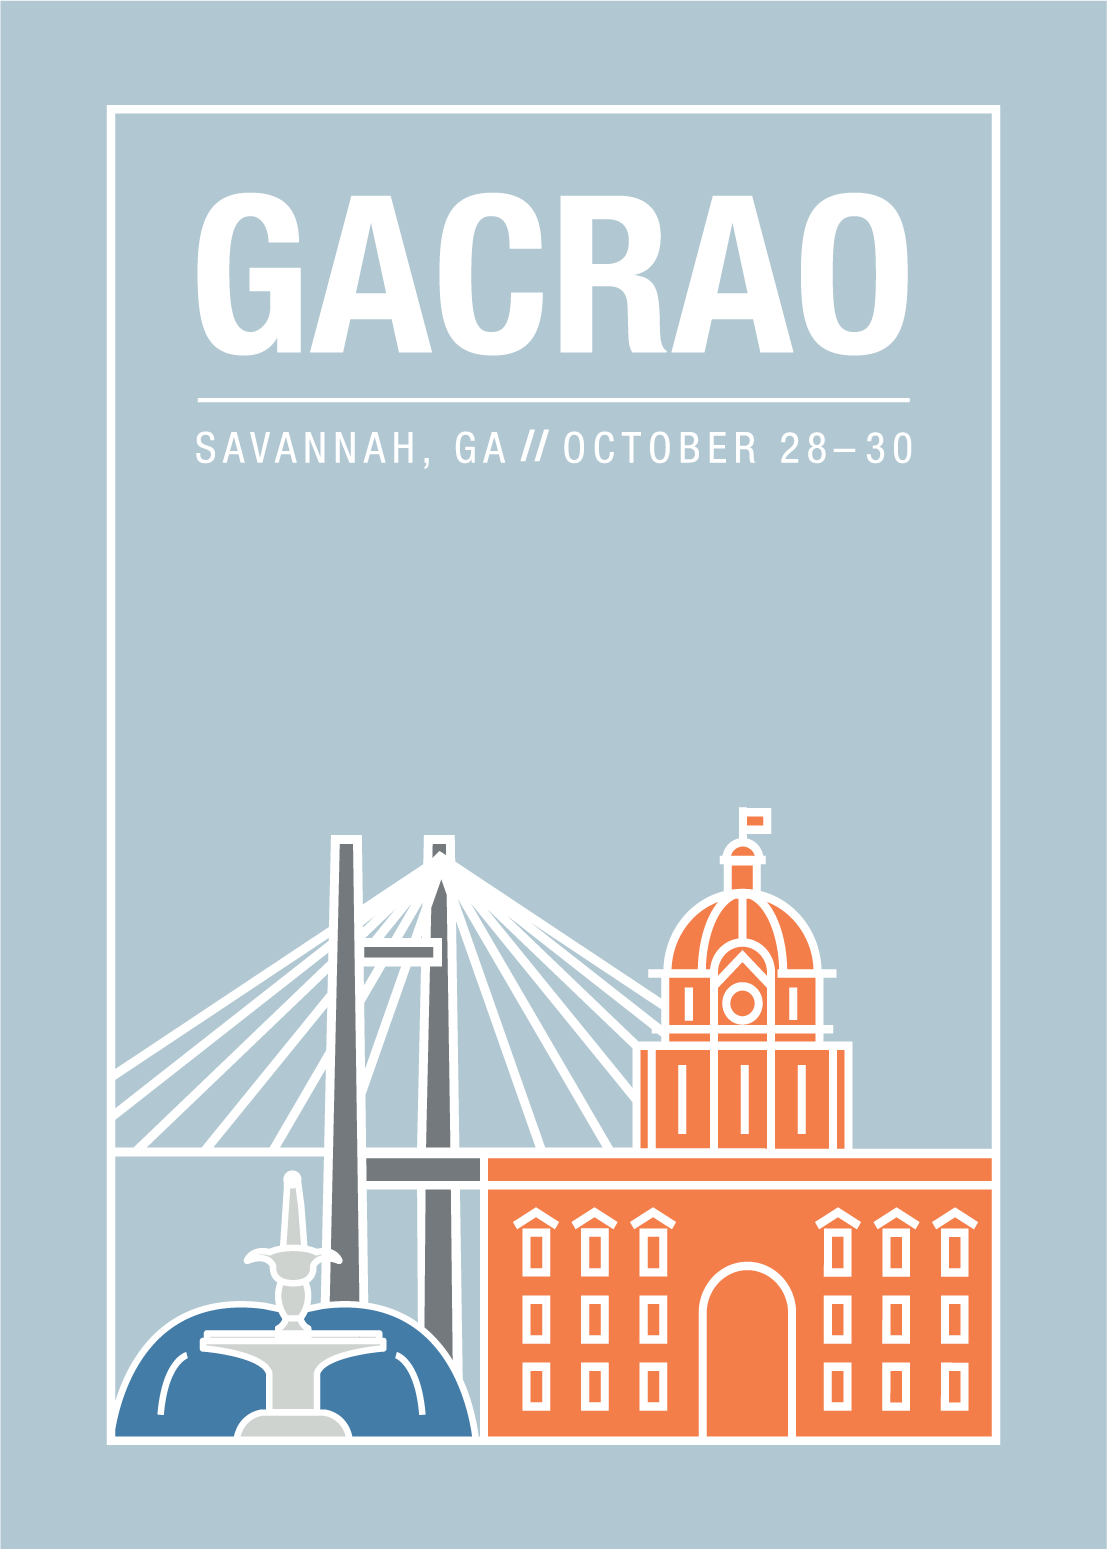 2018 GACRAO Annual Conference